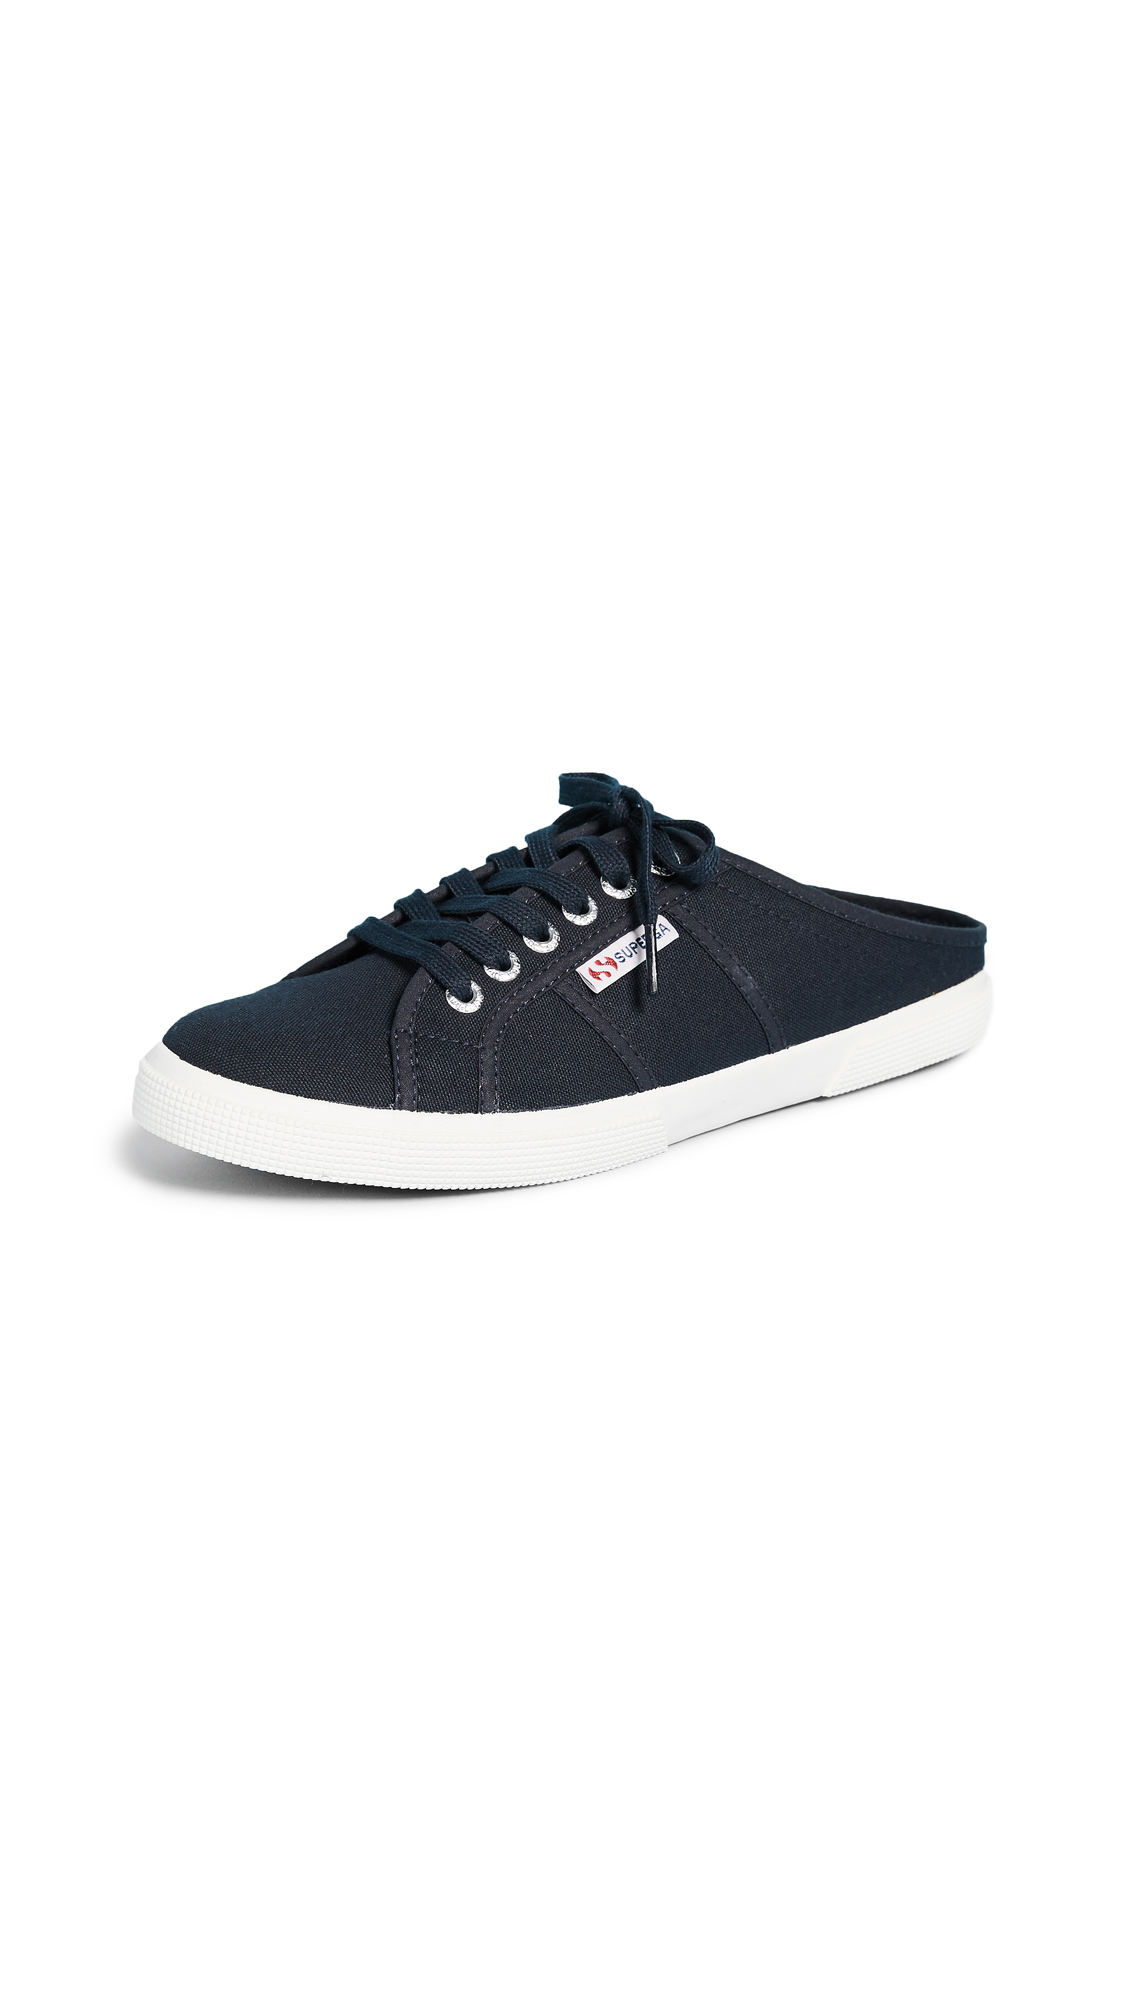 Superga 2288 Mule Sneakers - Navy